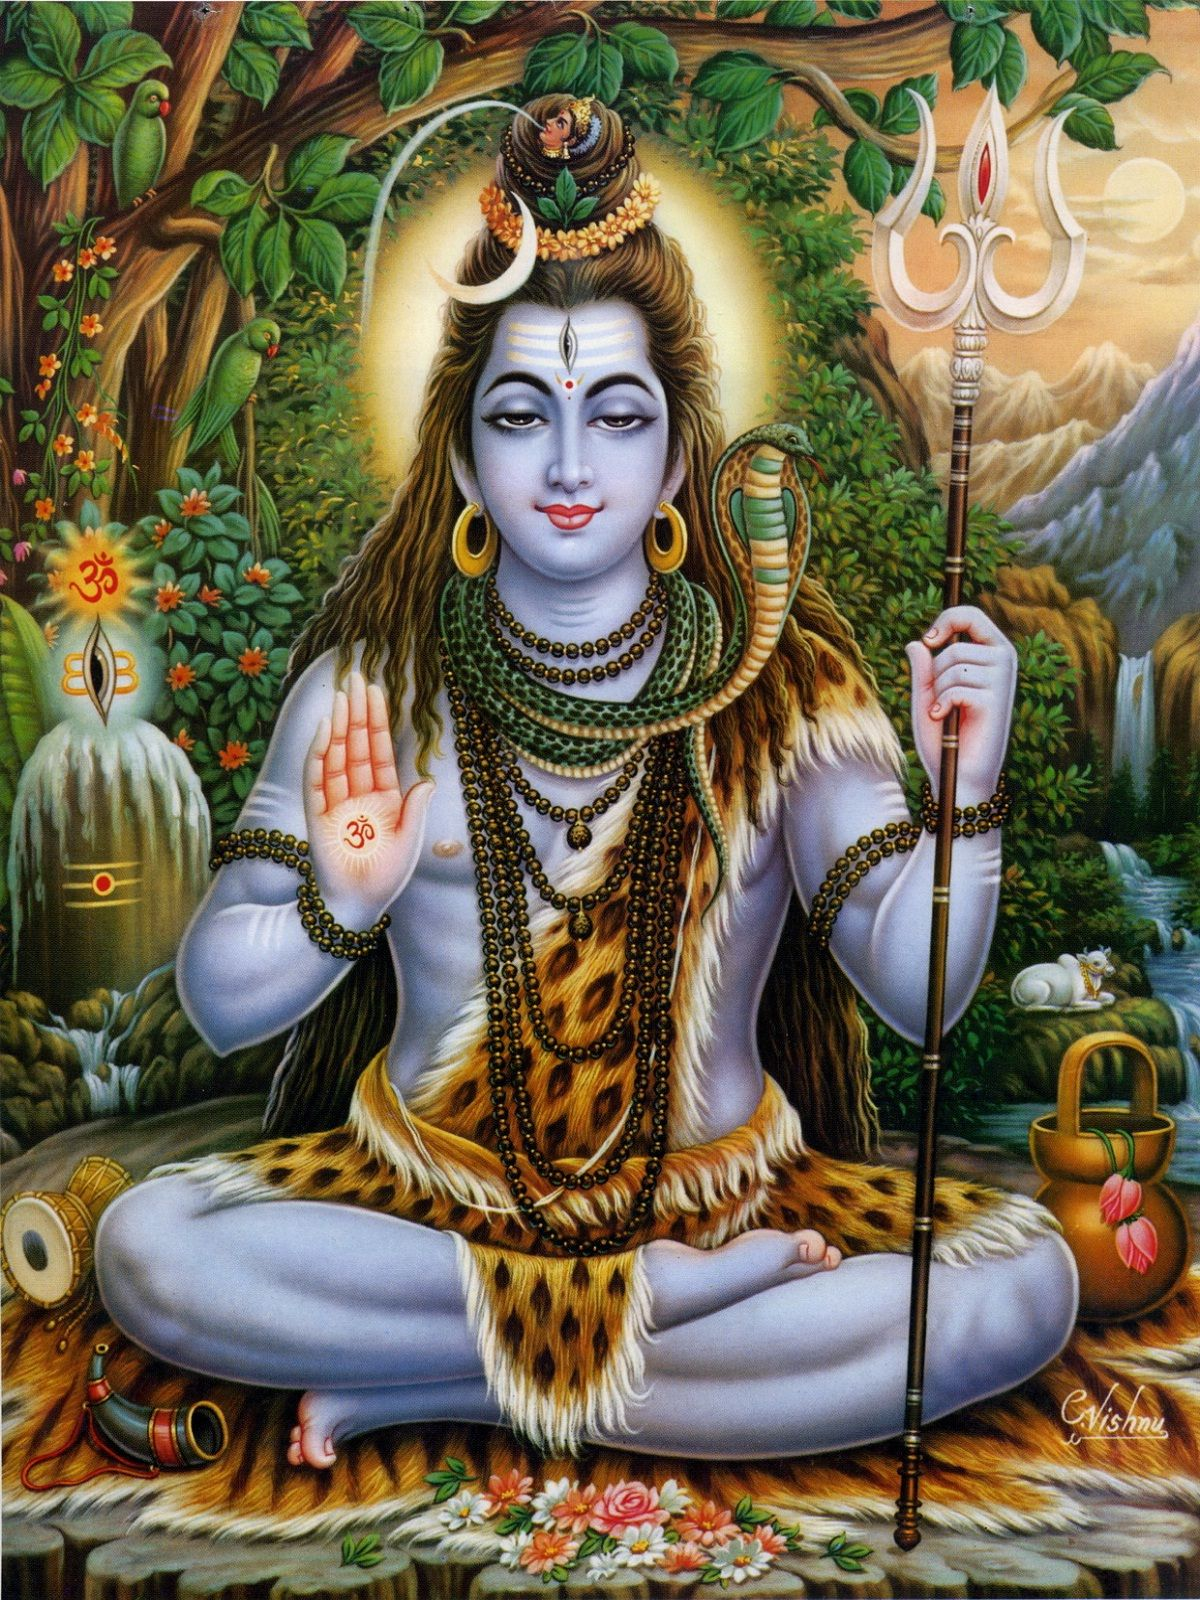 Download God Wallpaper Hd For Mobile Gallery Lord Shiva God Shiva Lord Siva